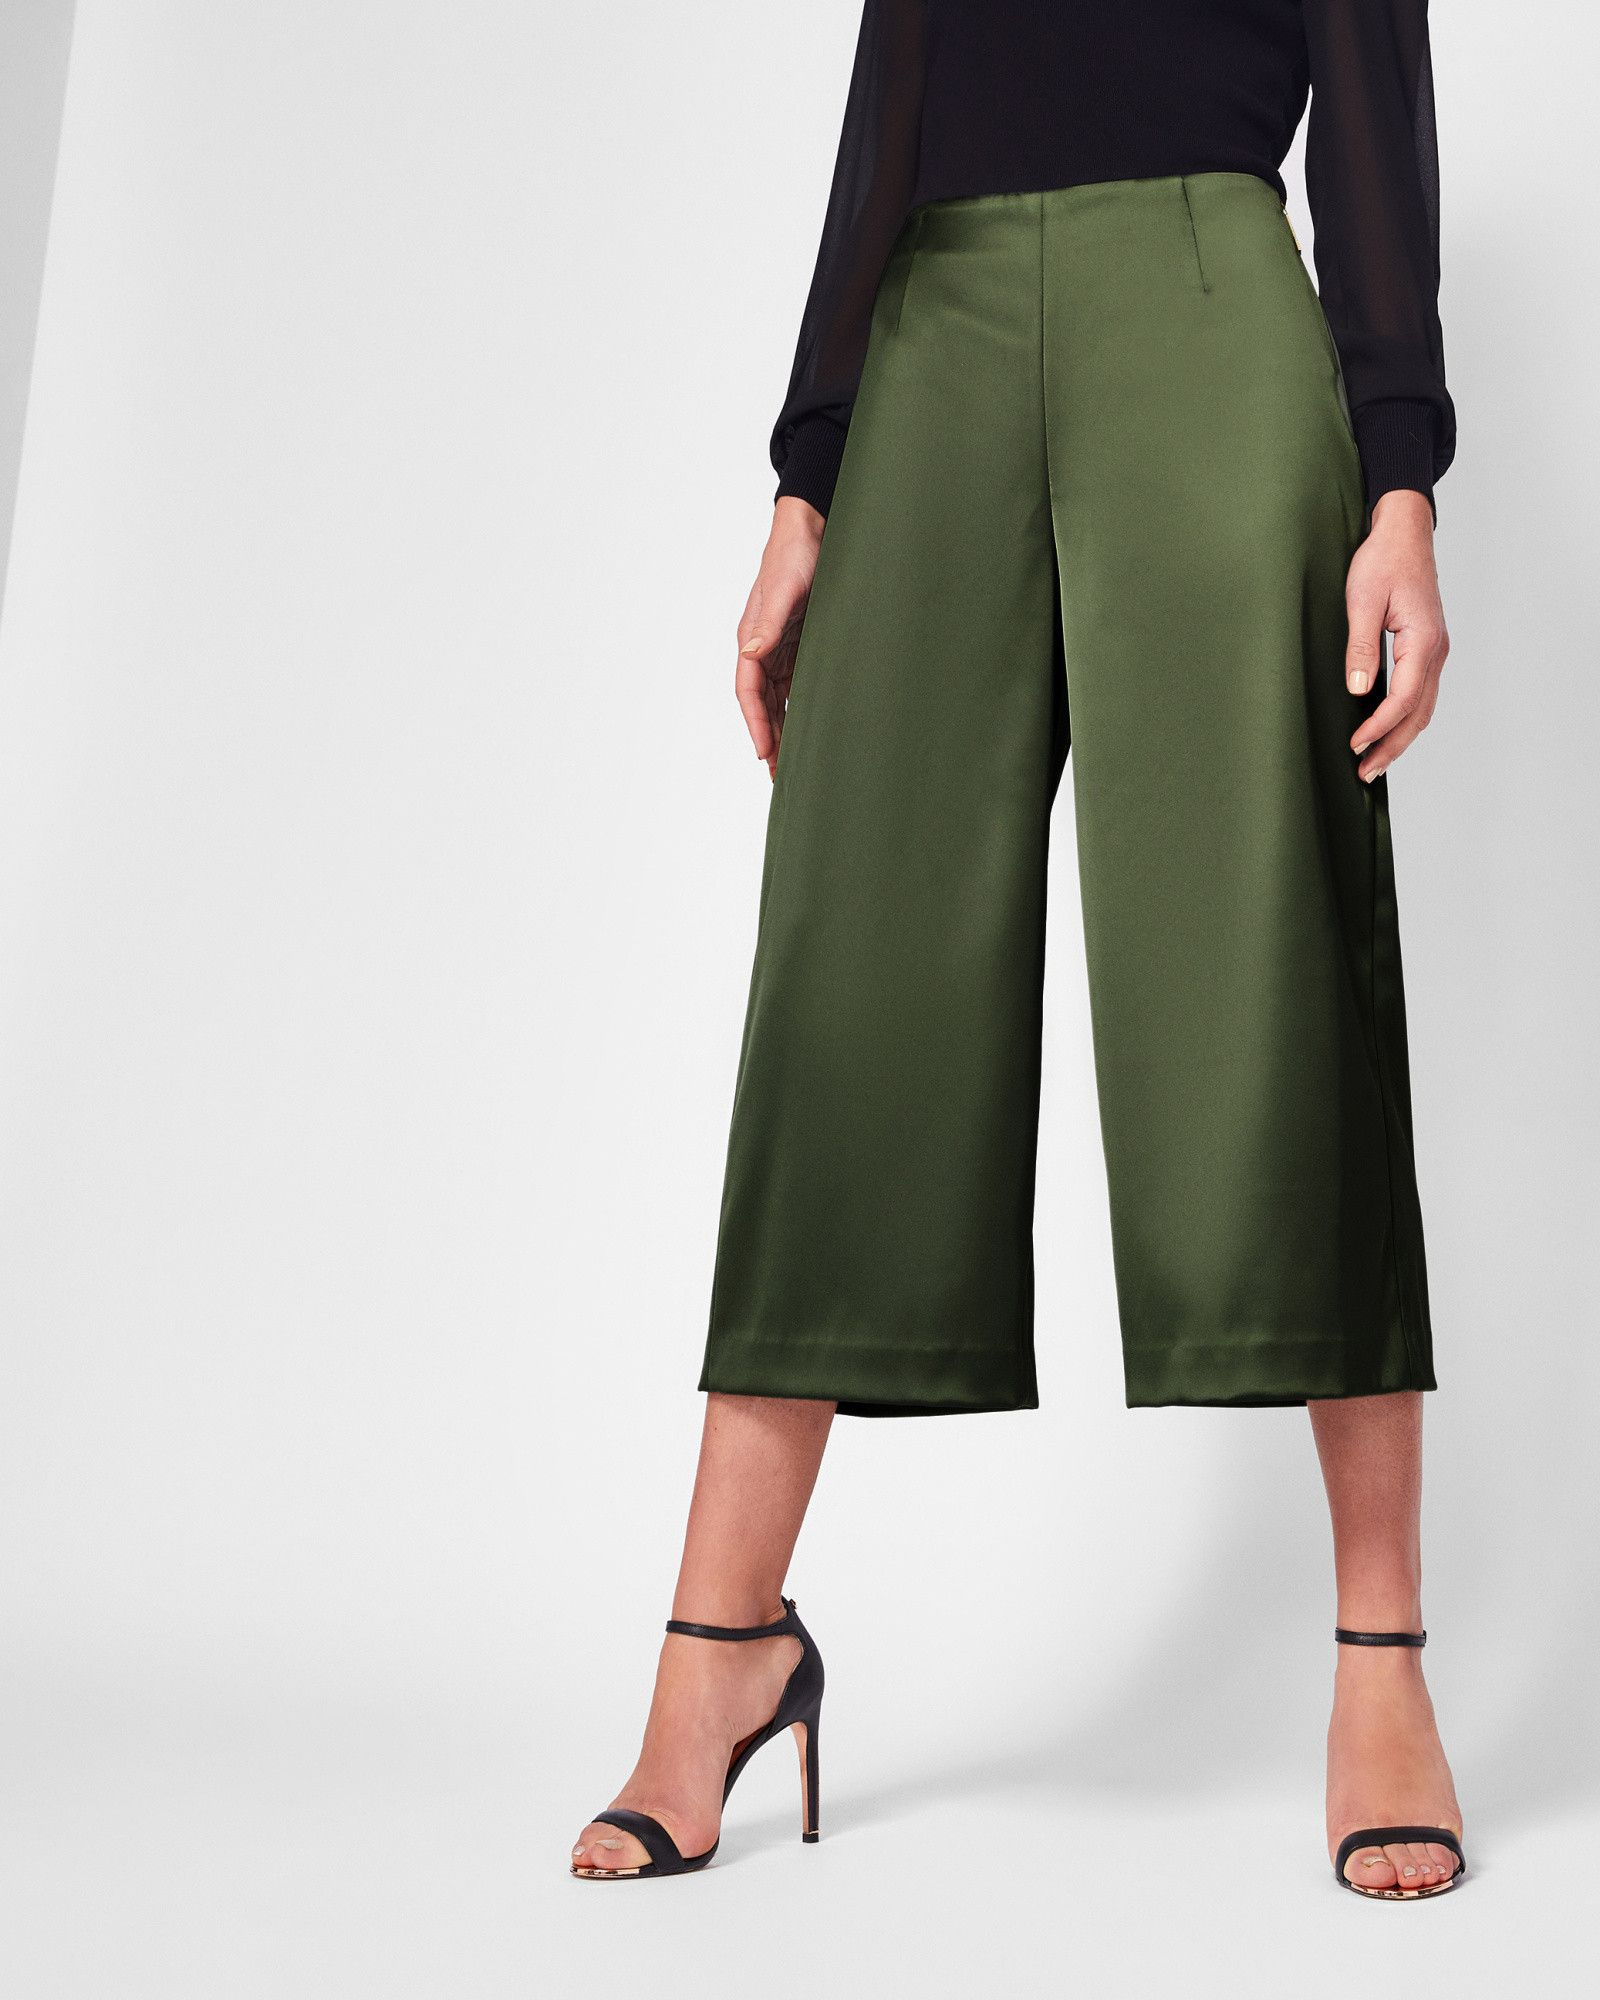 560f01587 Ted Baker Wide leg culottes